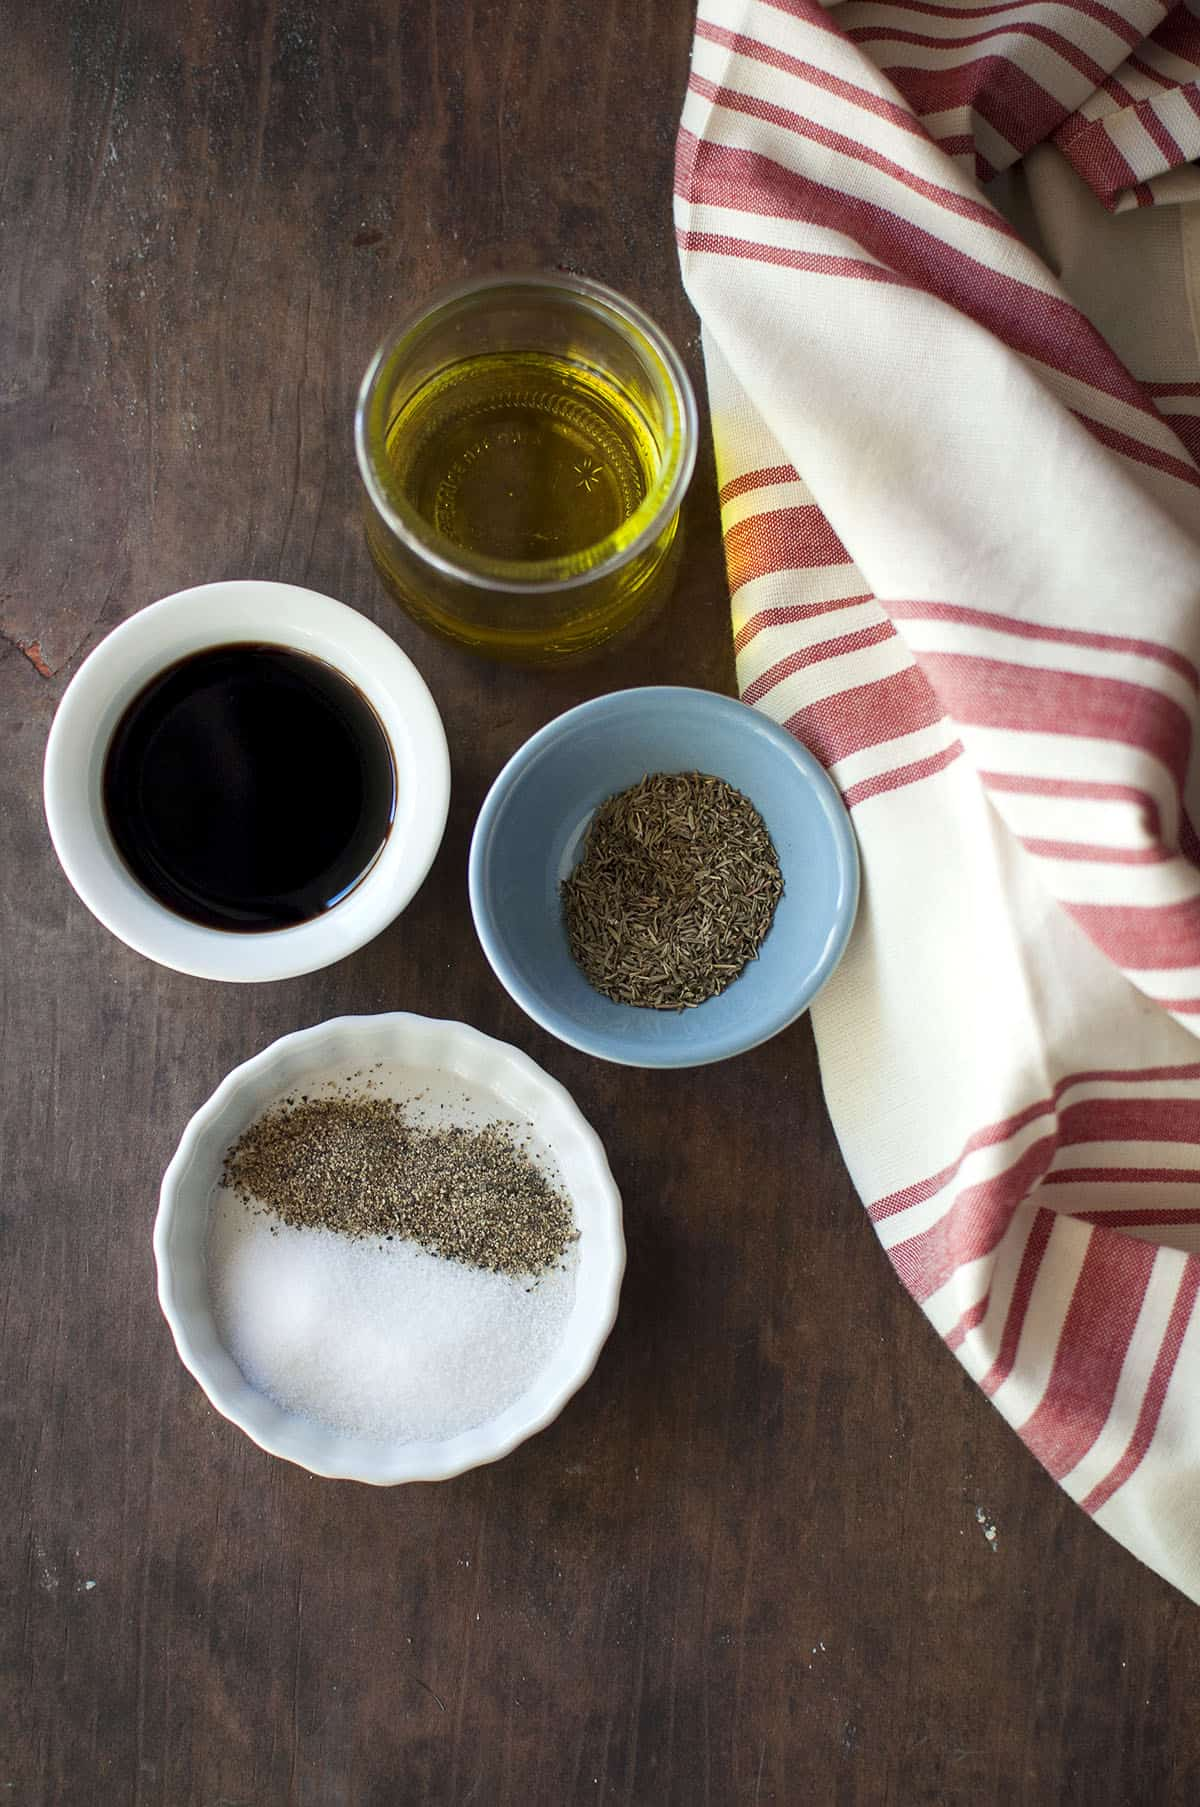 Ingredients for the recipe - olive oil, balsamic vinegar, dried thyme, salt and pepper